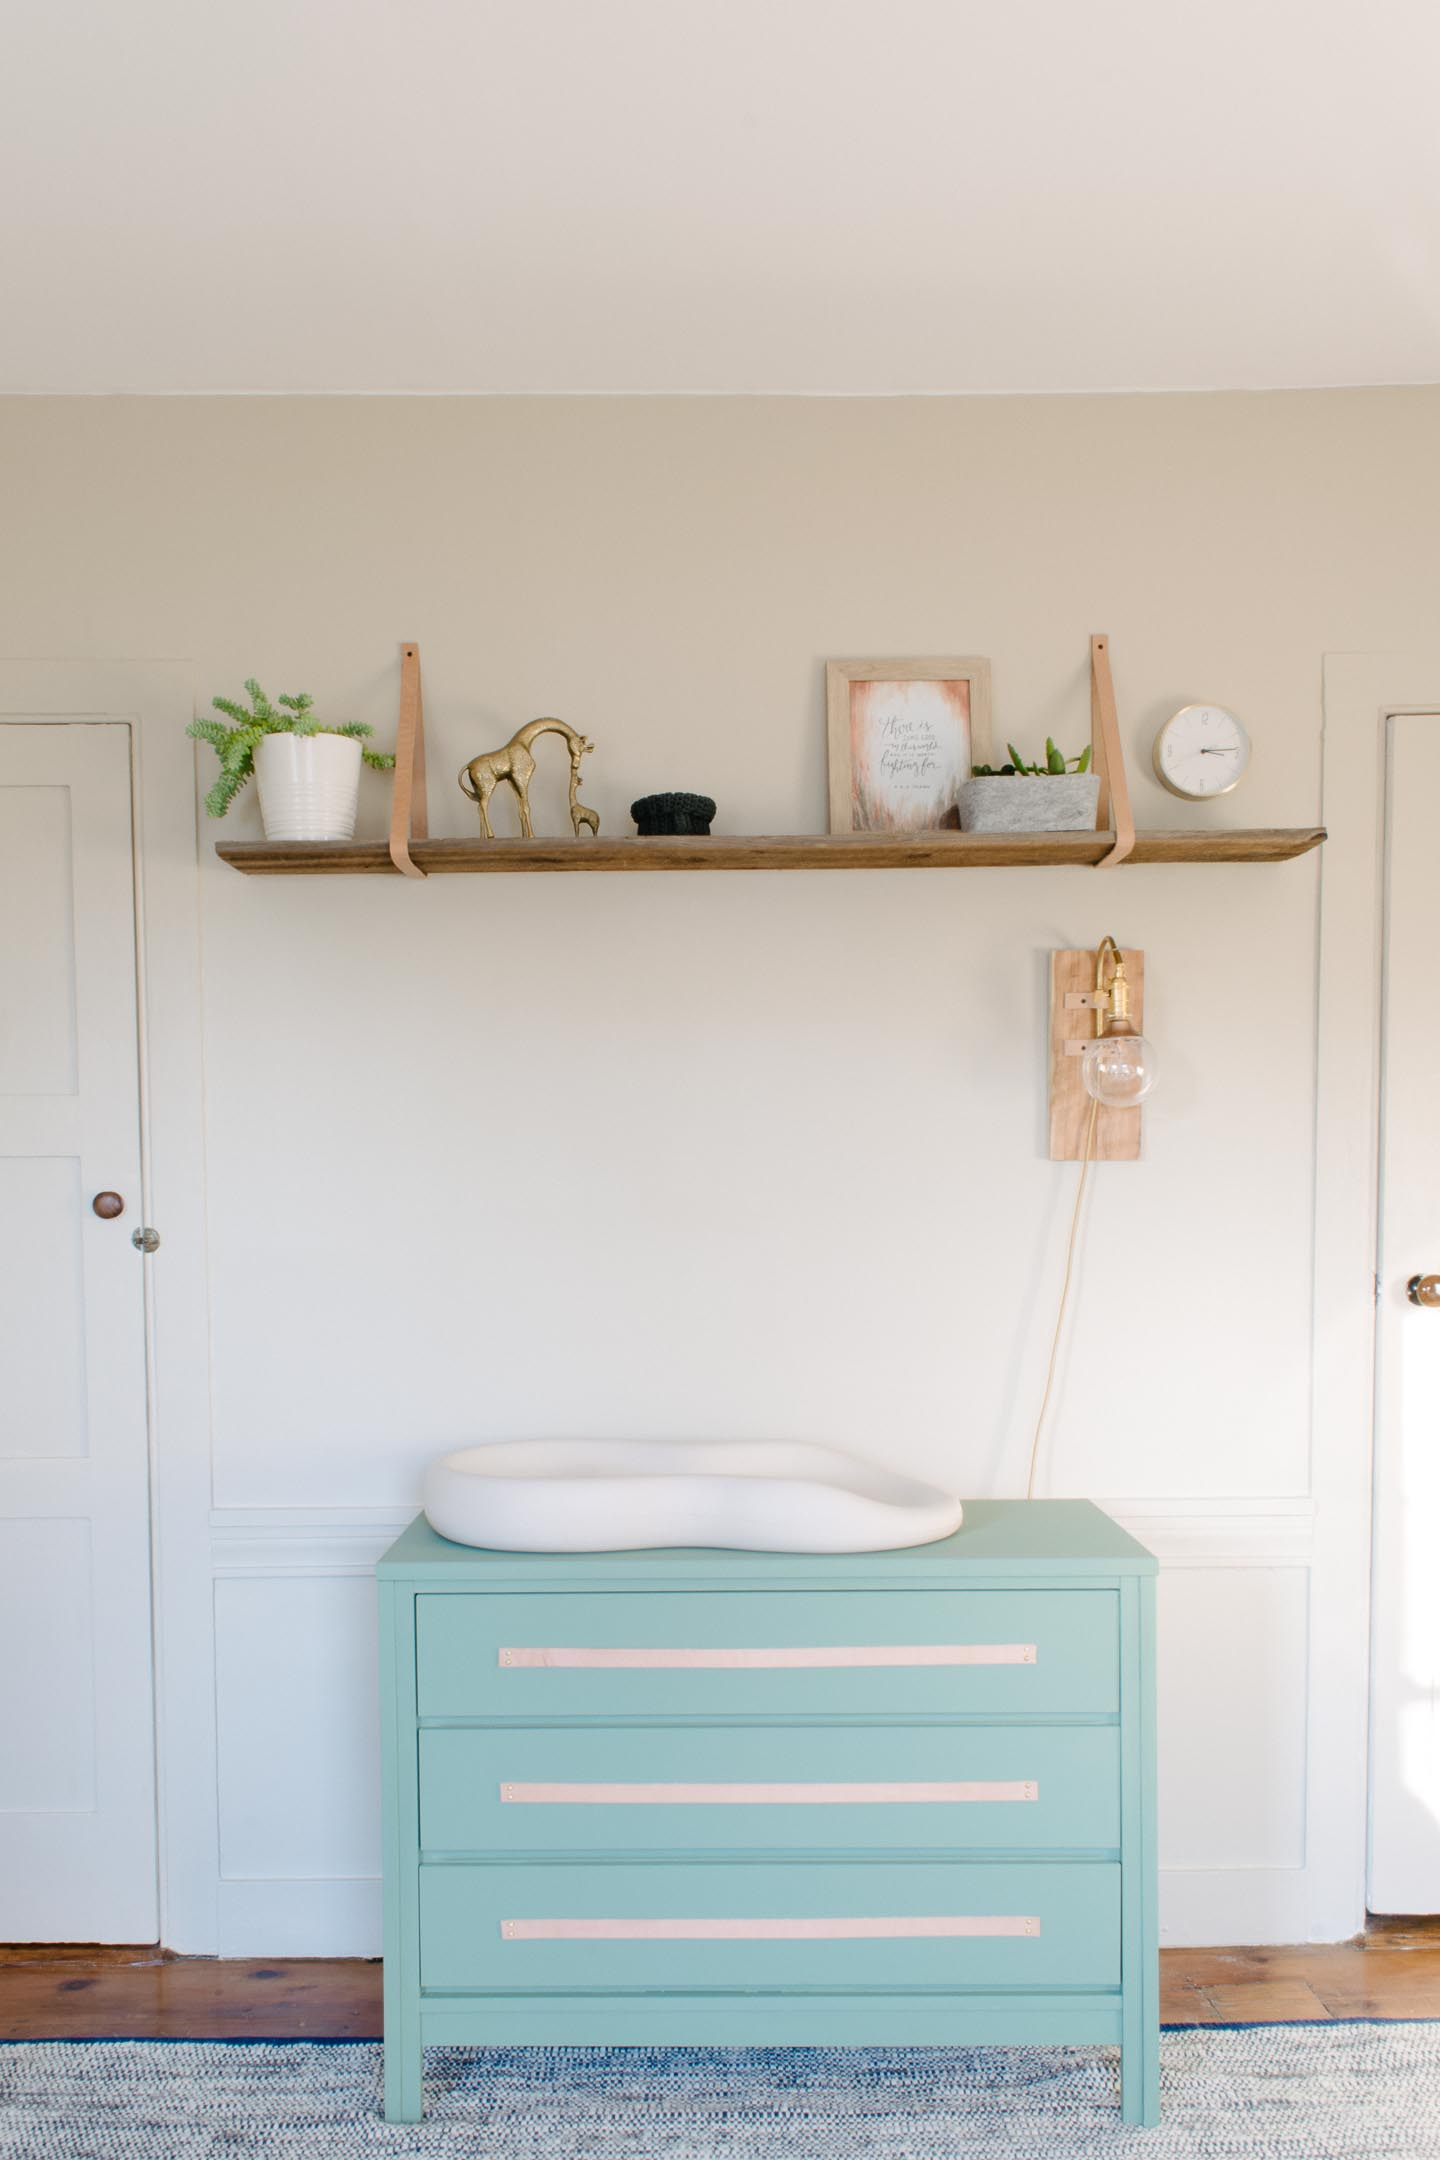 Reclaimed Shelf |Green Dresser | Mid-Century Dresser | Leather Pull Dresser | Natural & Soothing Boy's Nursery Reveal | Brass, Leather, and Green touches in a little boy's nursery | Geometric Nursery | Mid-Century Nursery | Baby Nursery | Modern and Natural Boy's Room | Green Dresser | Green Changing Table |